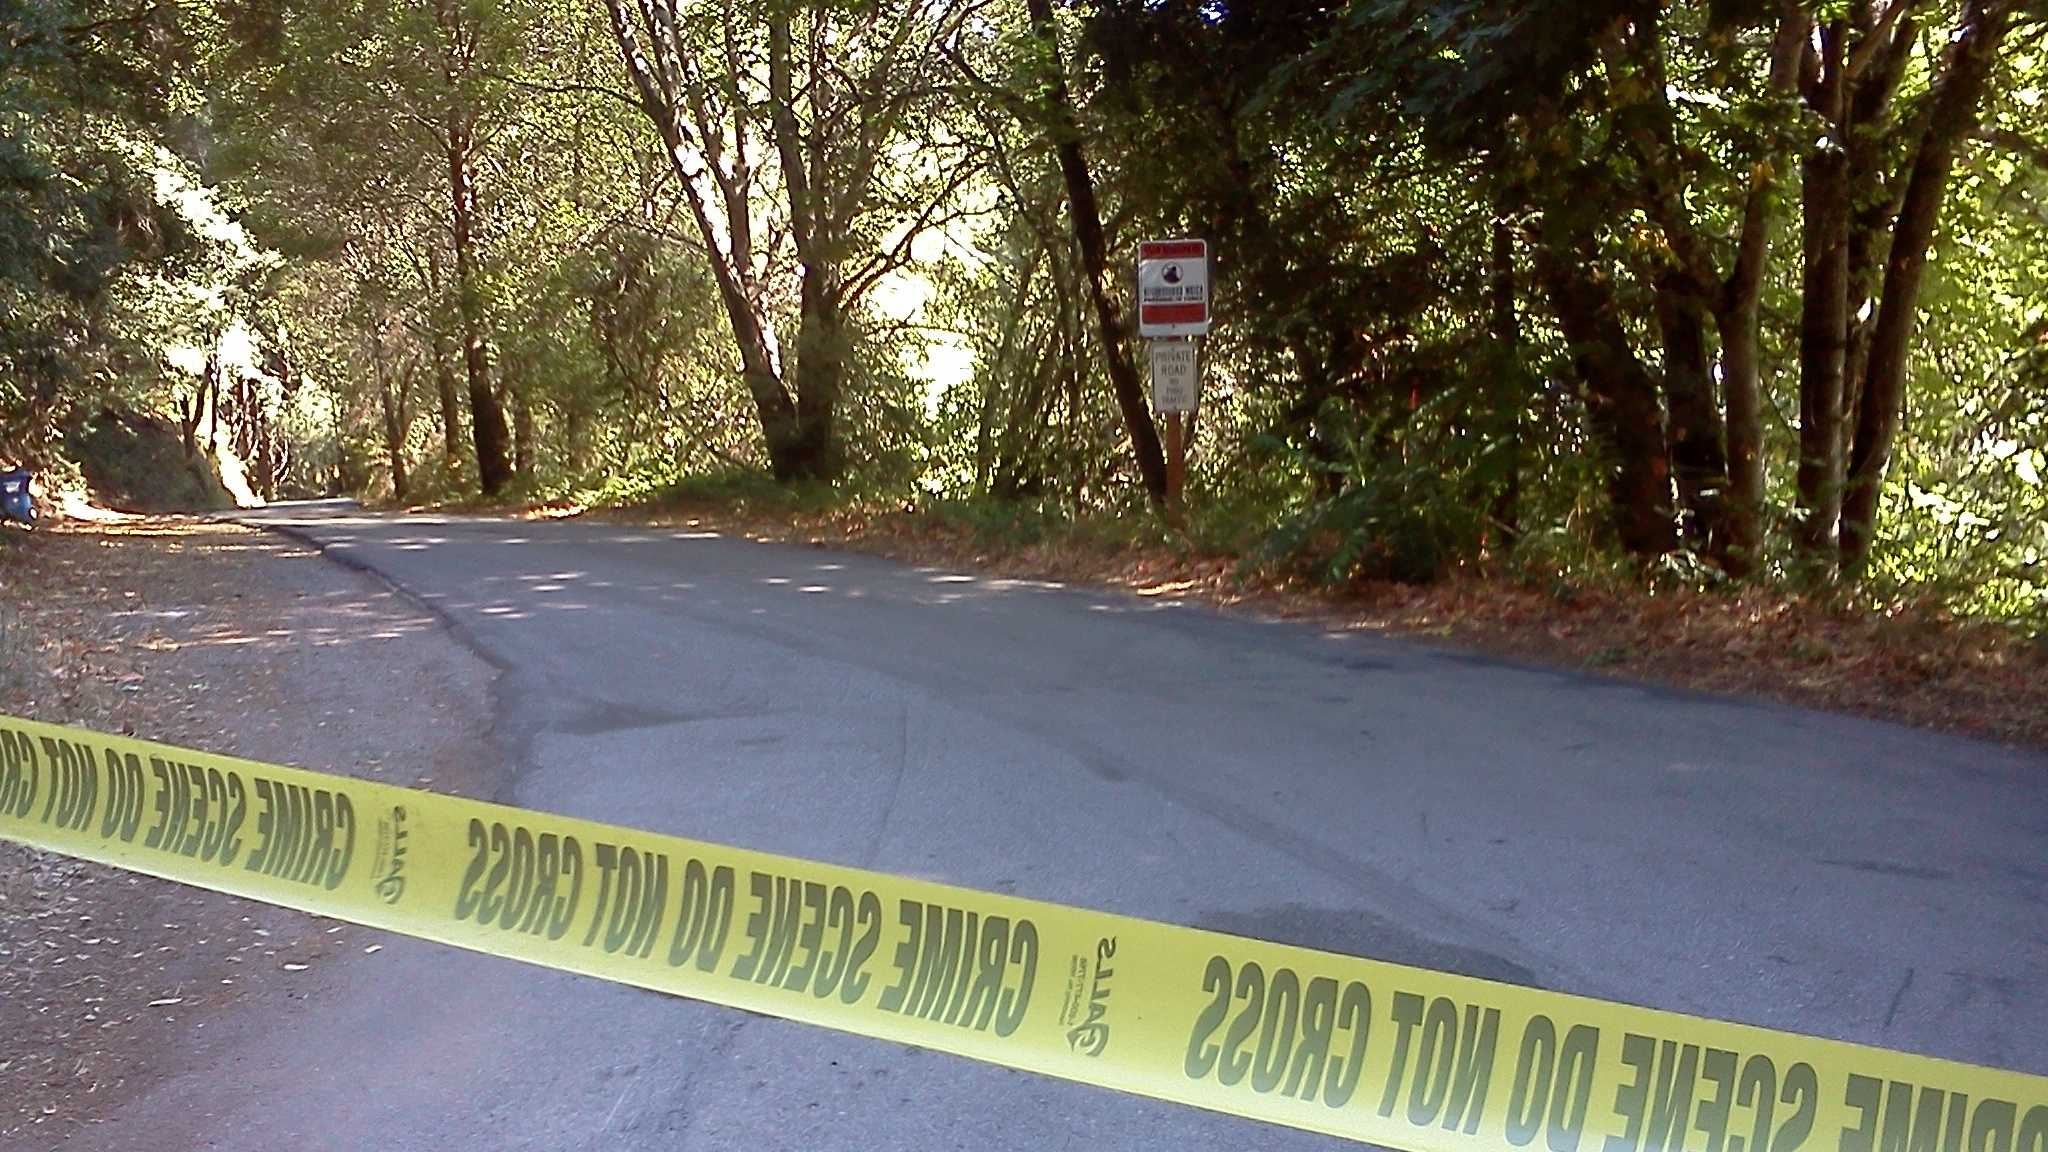 Body found with gunshot wounds near the 300 block of Nicasio Way in Soquel